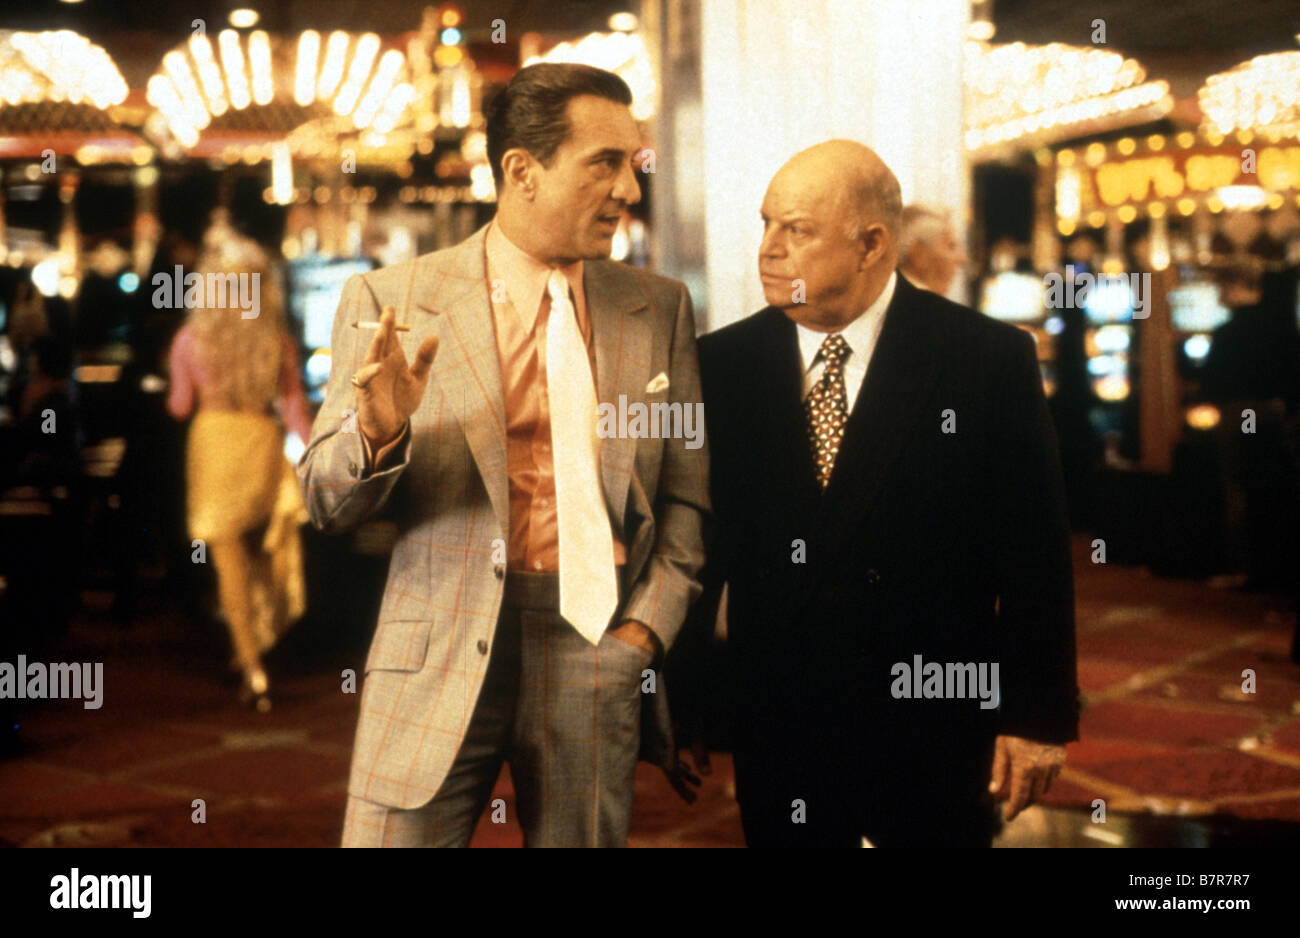 watch casino online robert de niro